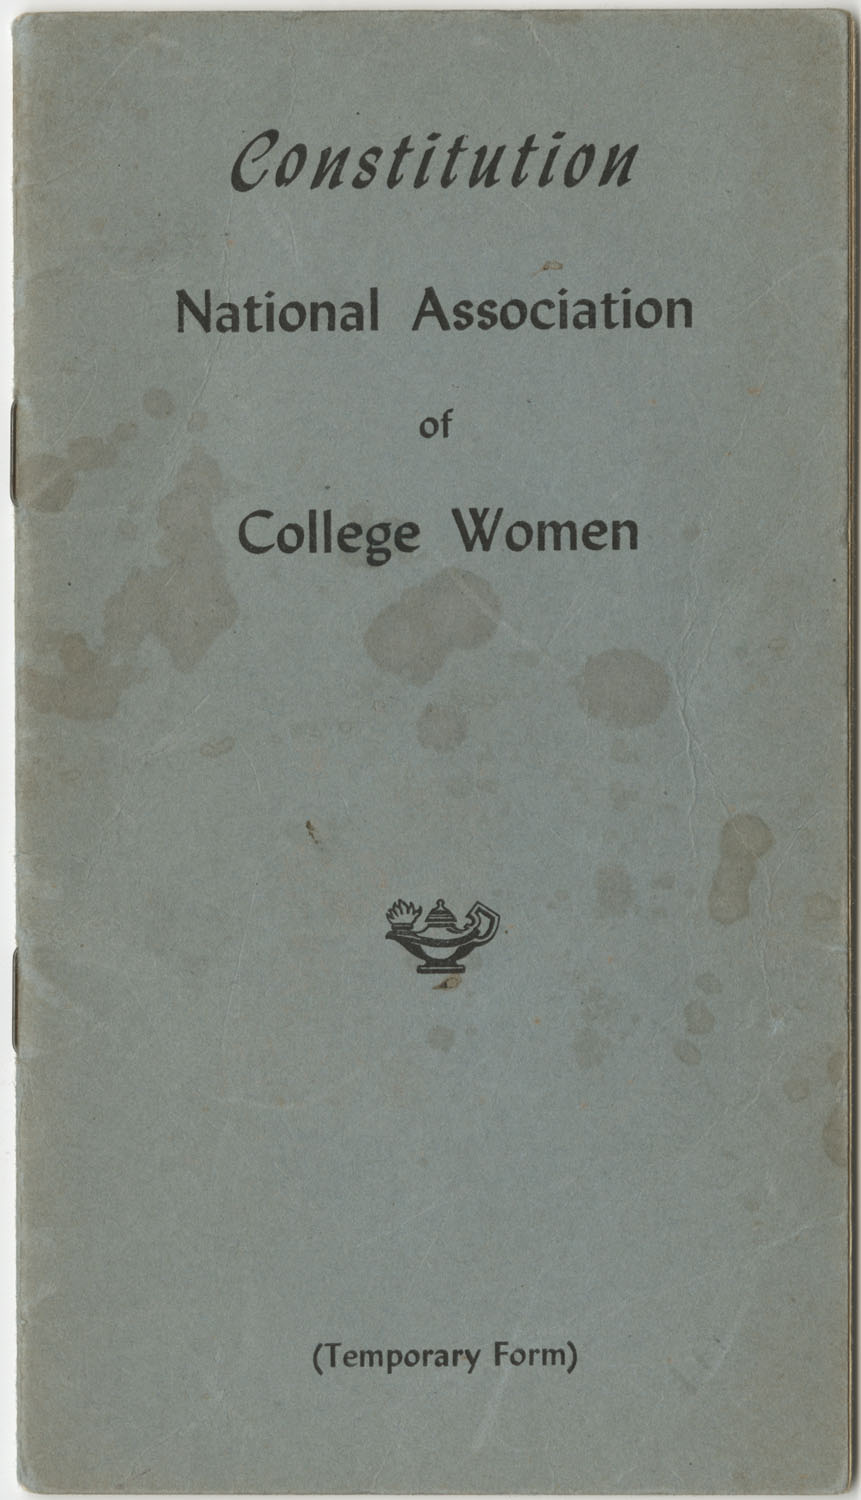 Constitution. National Association of College Women, Front Cover